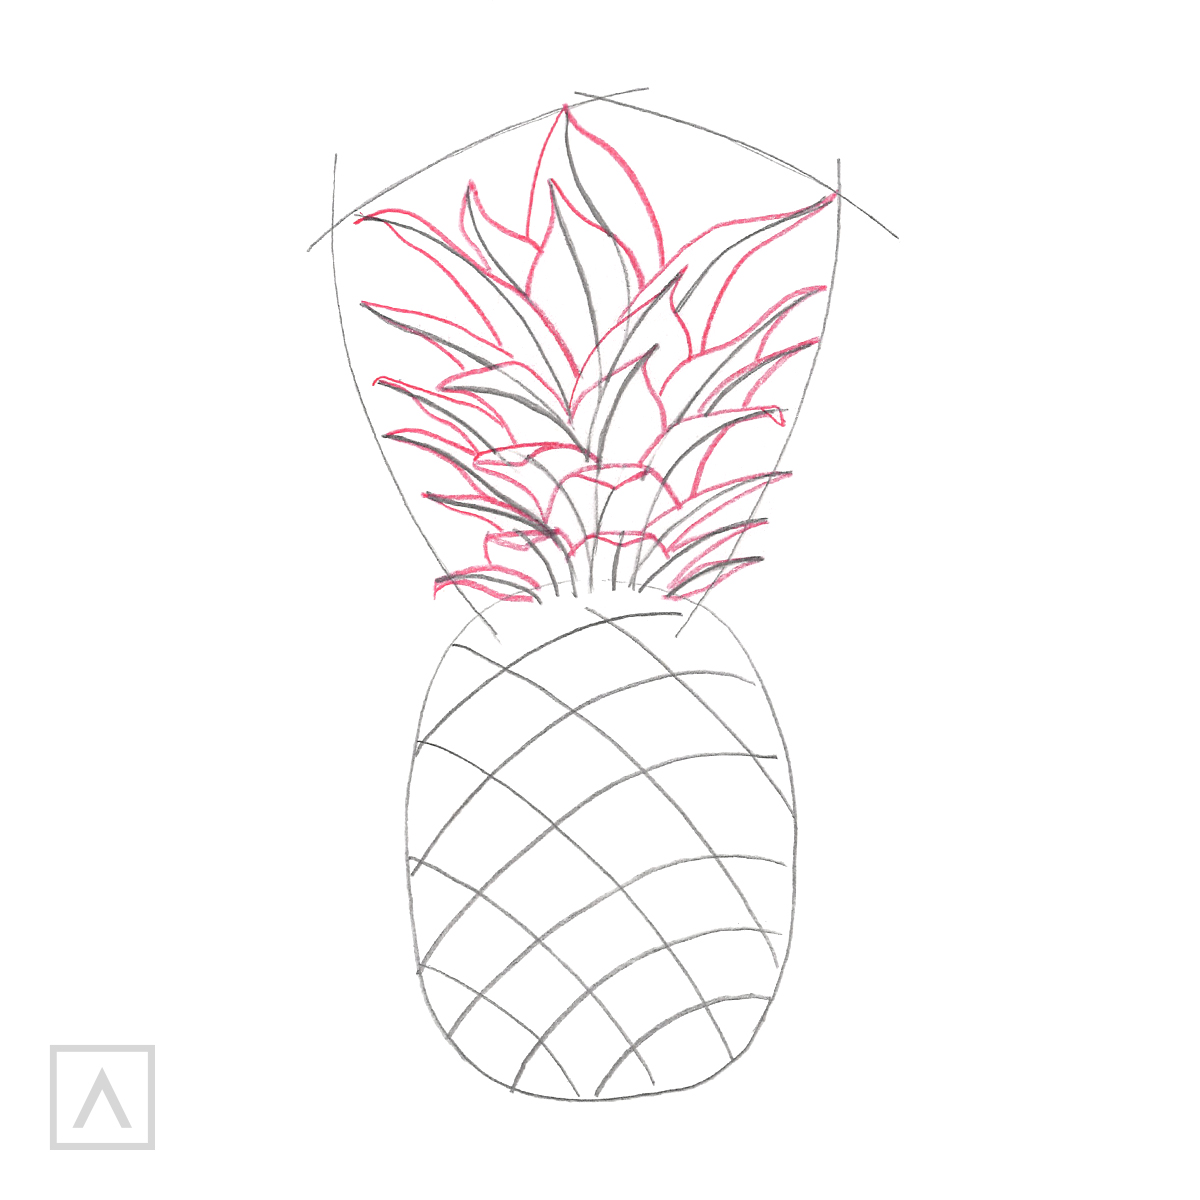 Pineapple drawing. Step 3